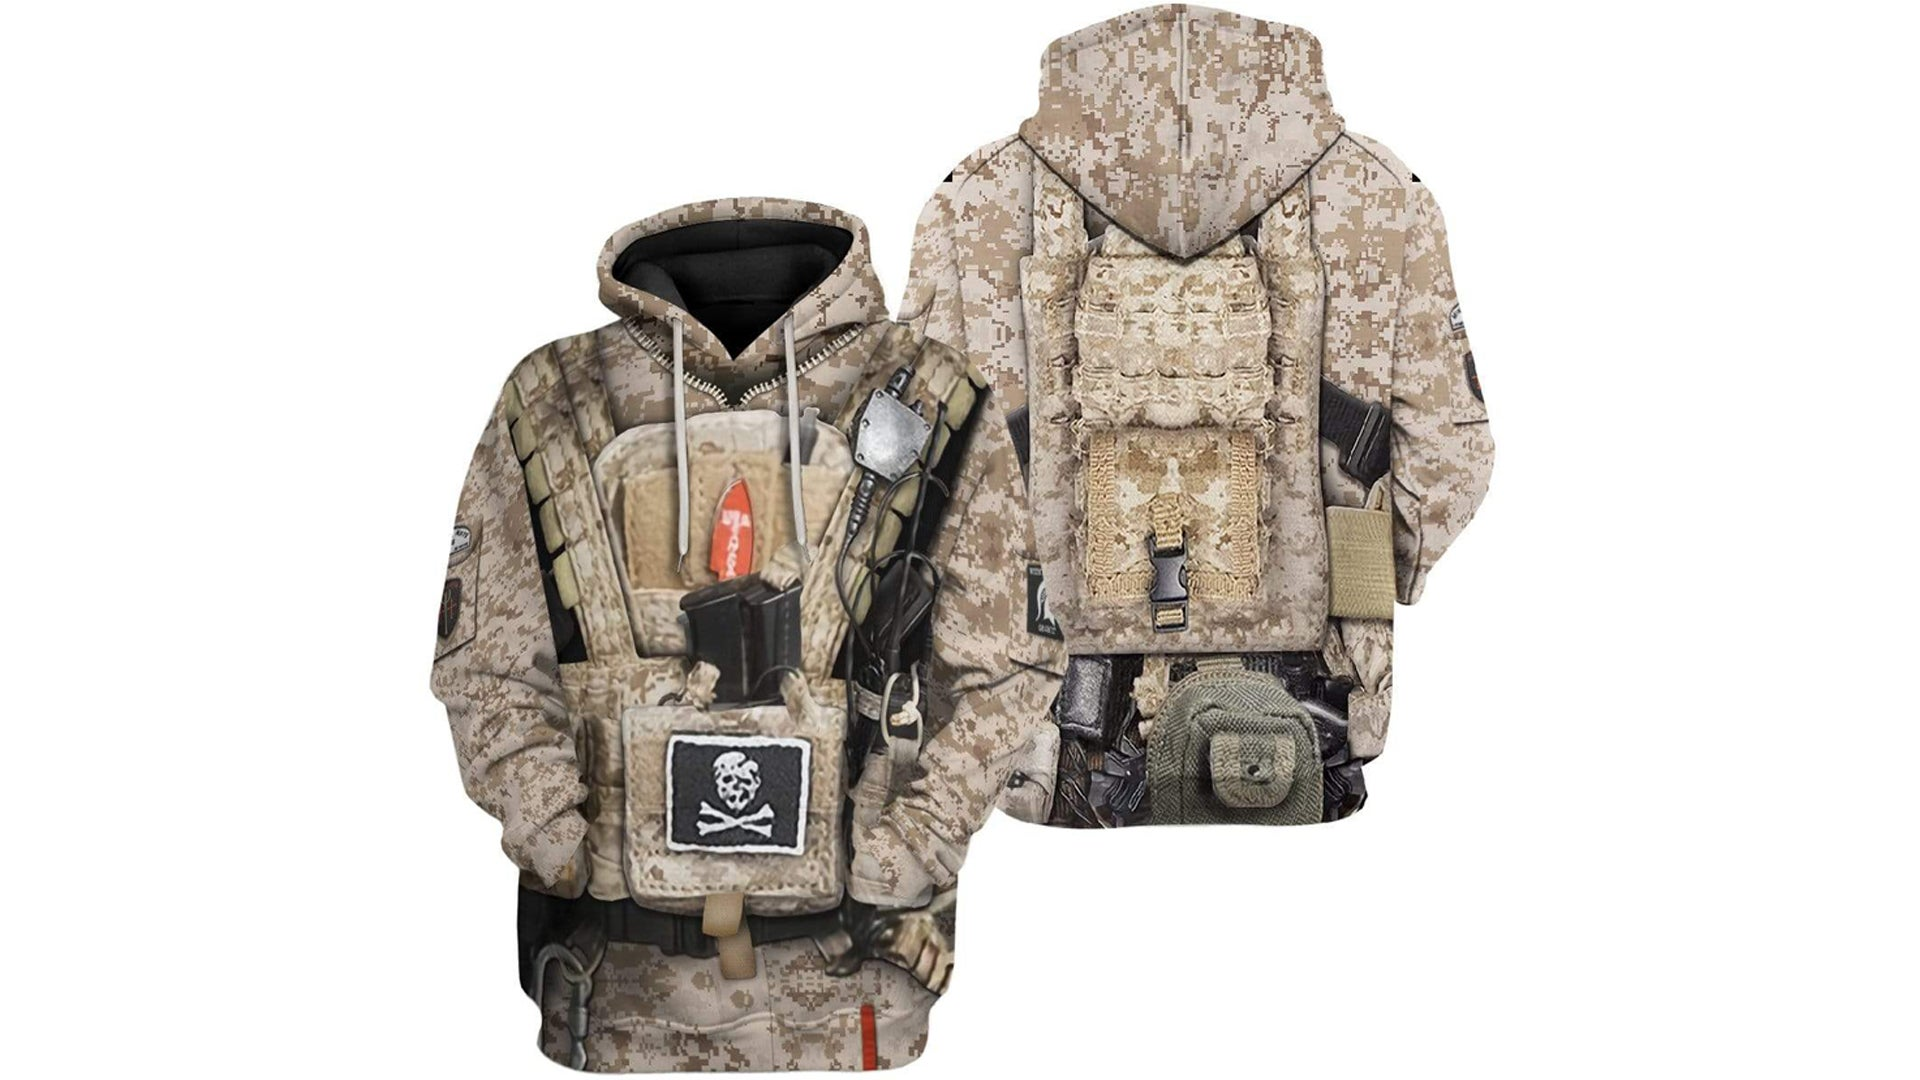 This $50 SEAL Team 6 hoodie is for silent — but loudly dressed — professionals. Book deal not included